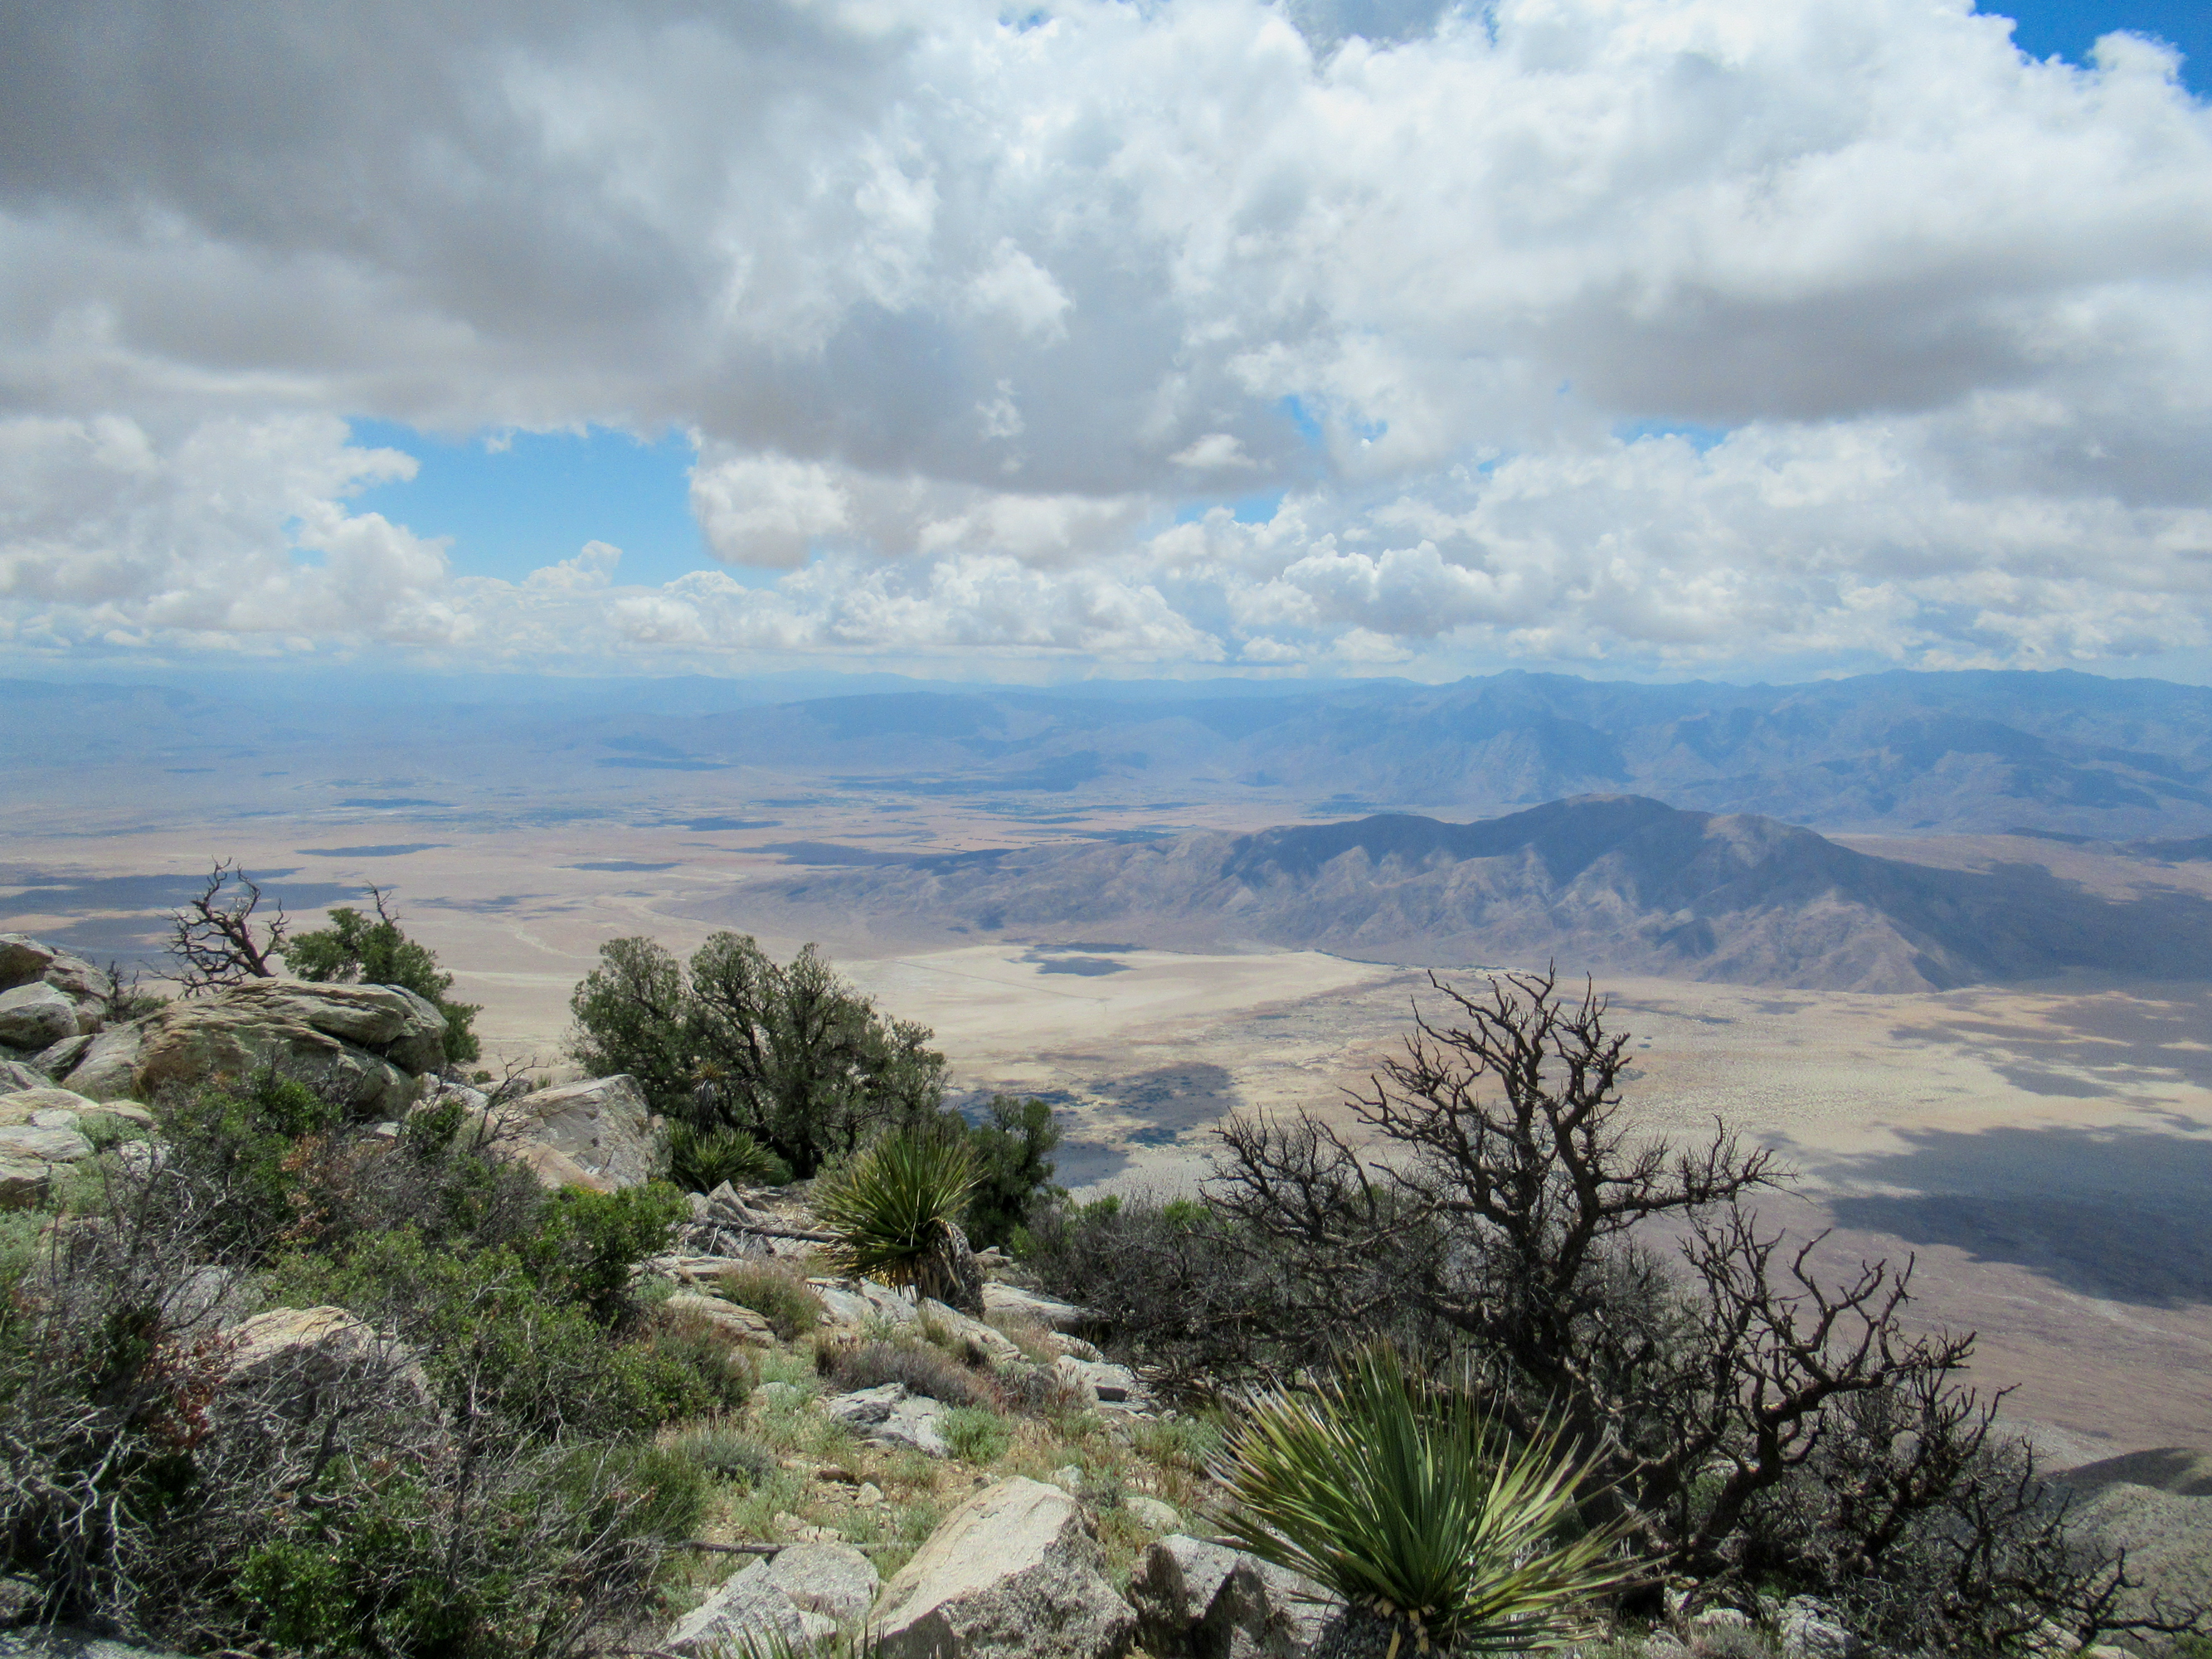 Views of Borrego Springs from Villager Peak.